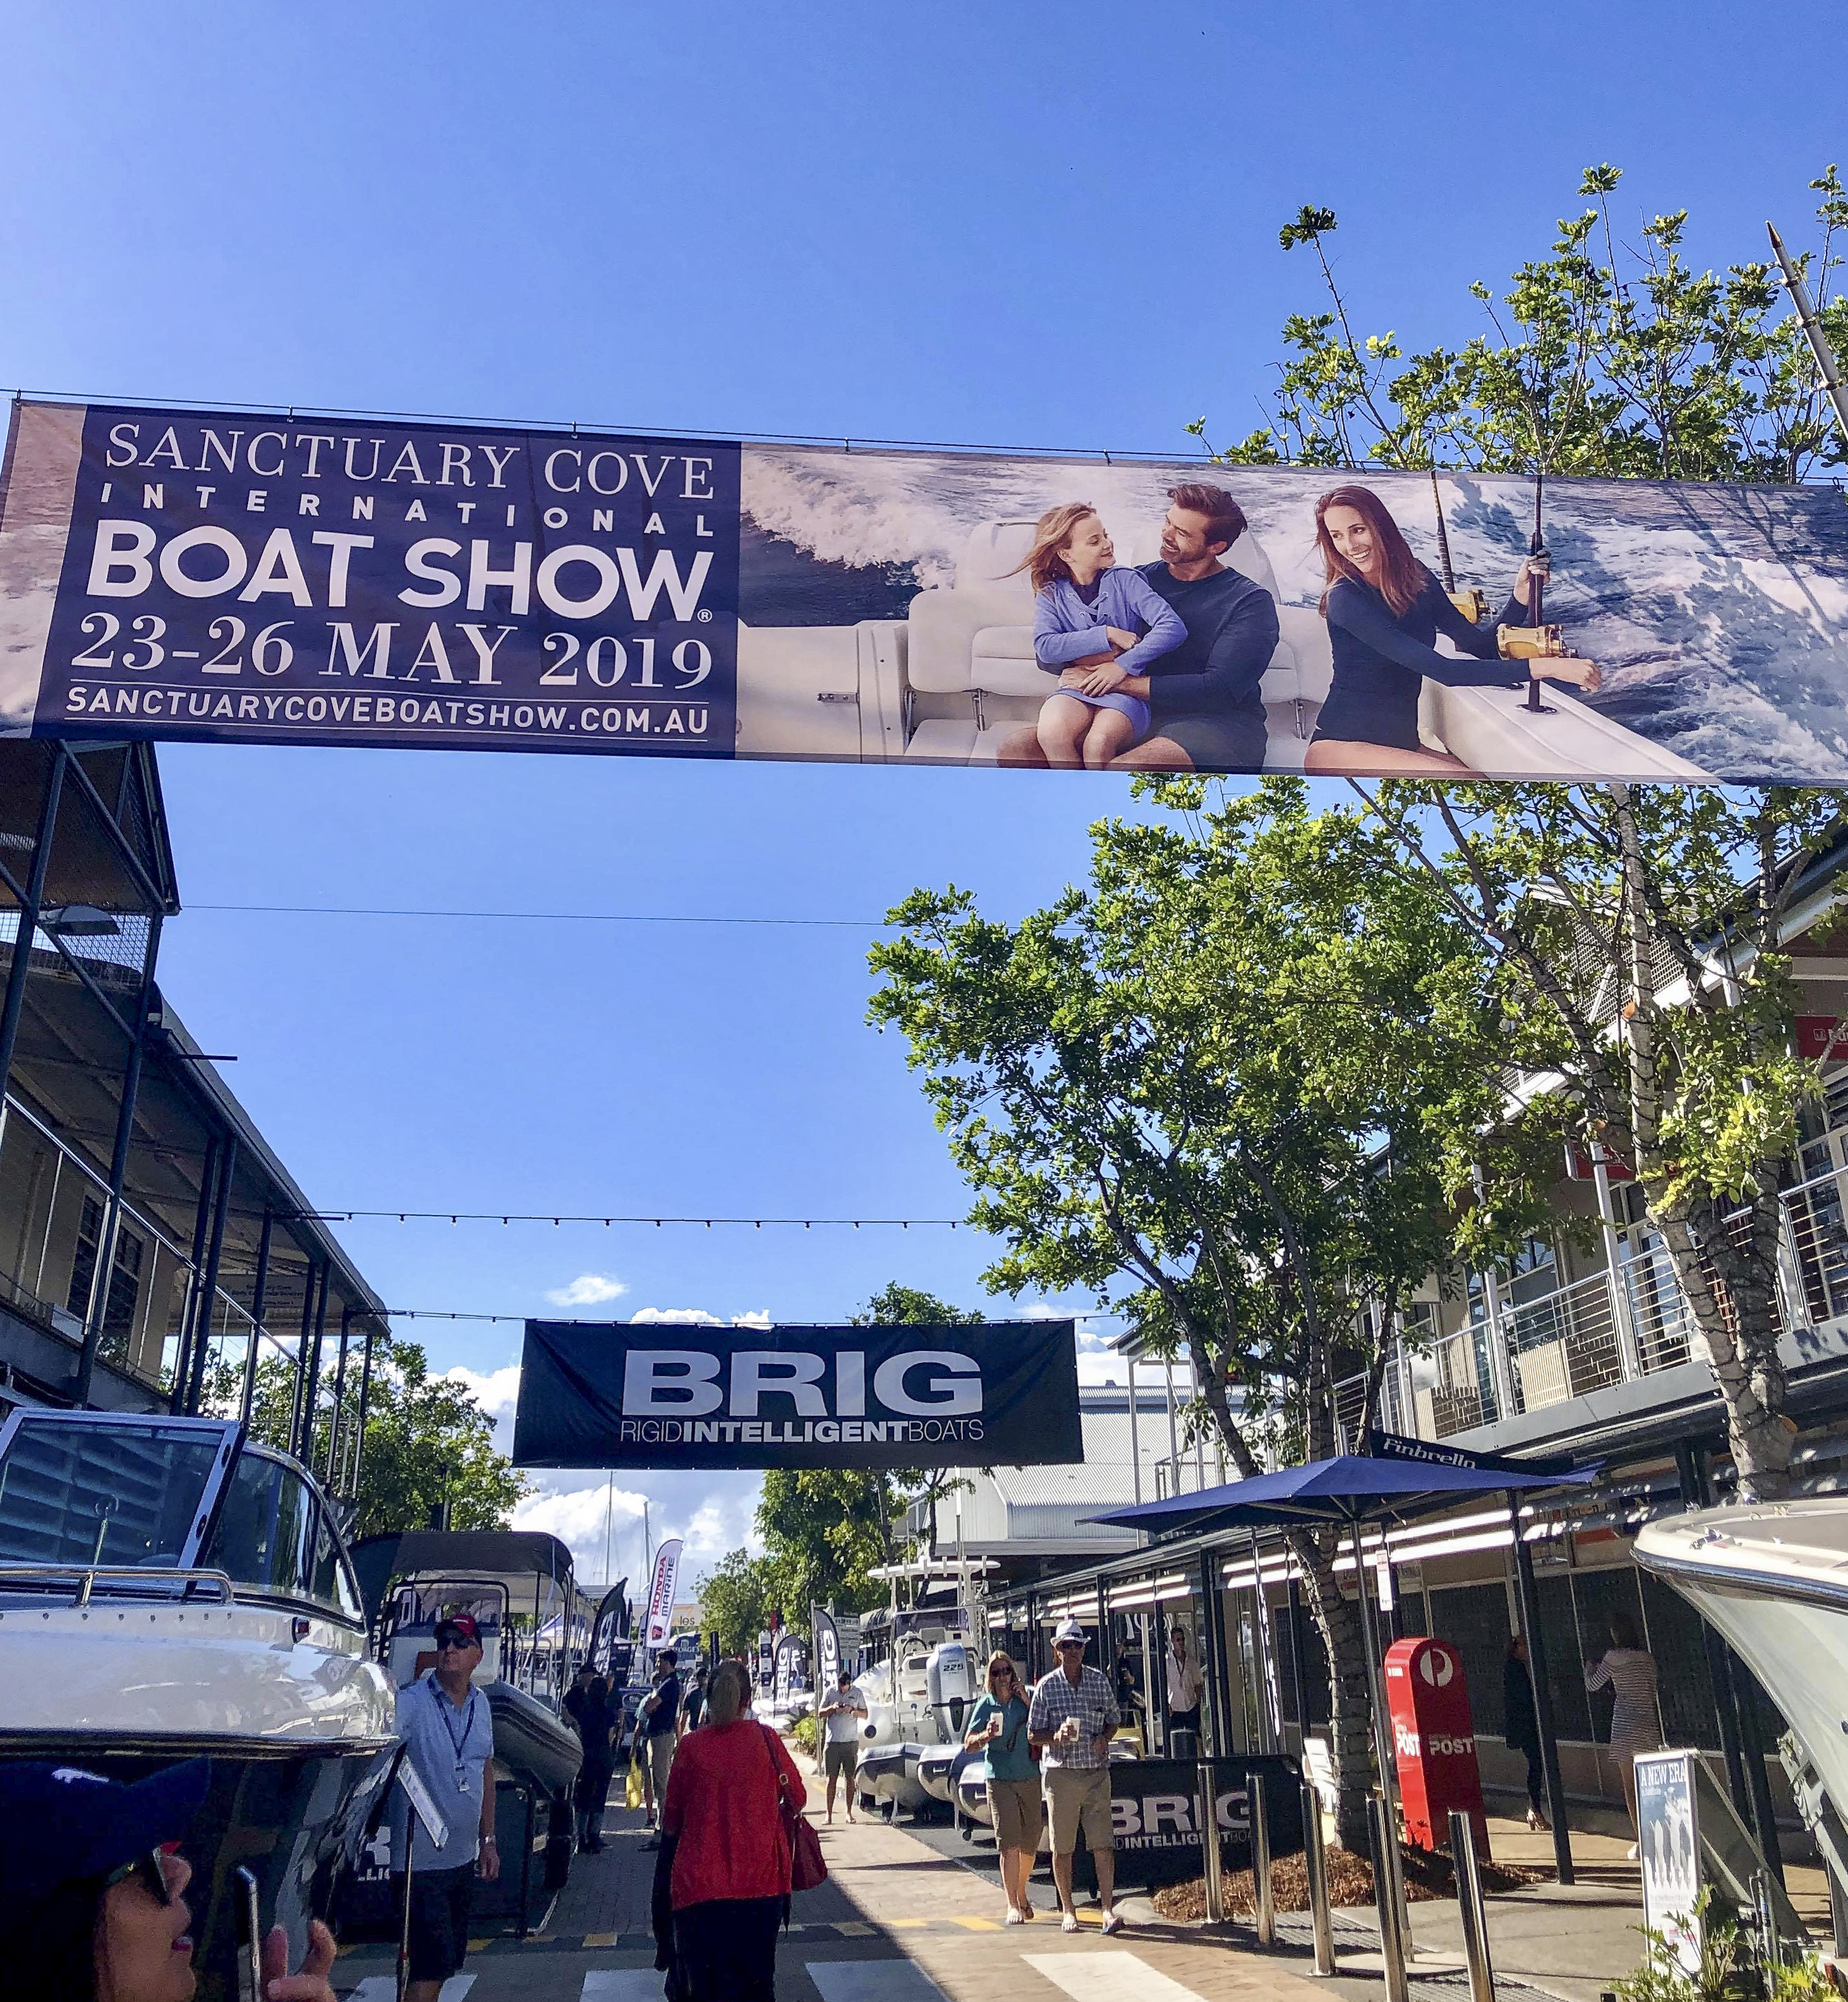 Gulf Craft at Sanctuary Cove Boat Show 2019 (10)